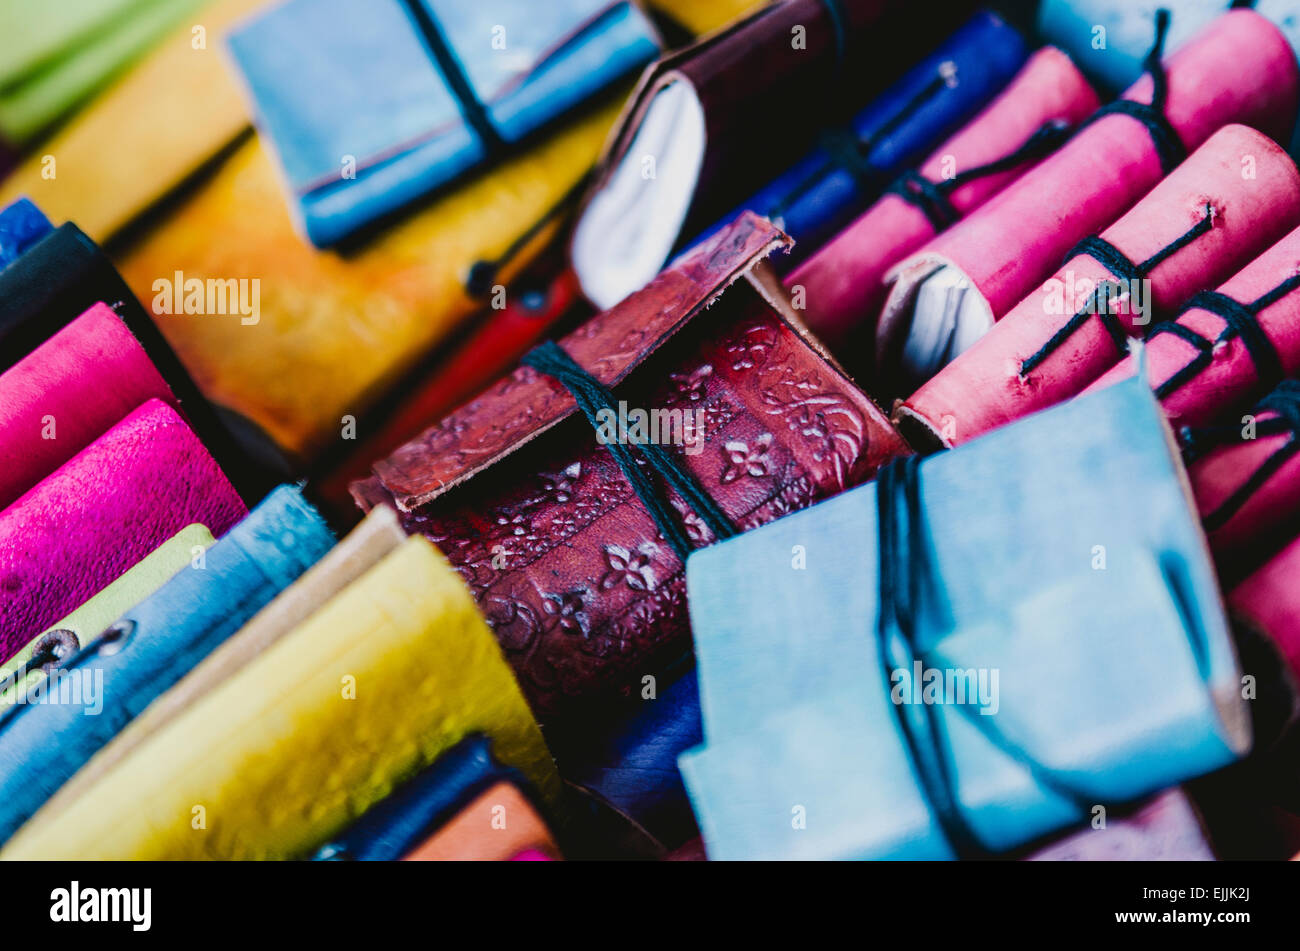 Colourful leather notebooks on an Amsterdam market stall. - Stock Image